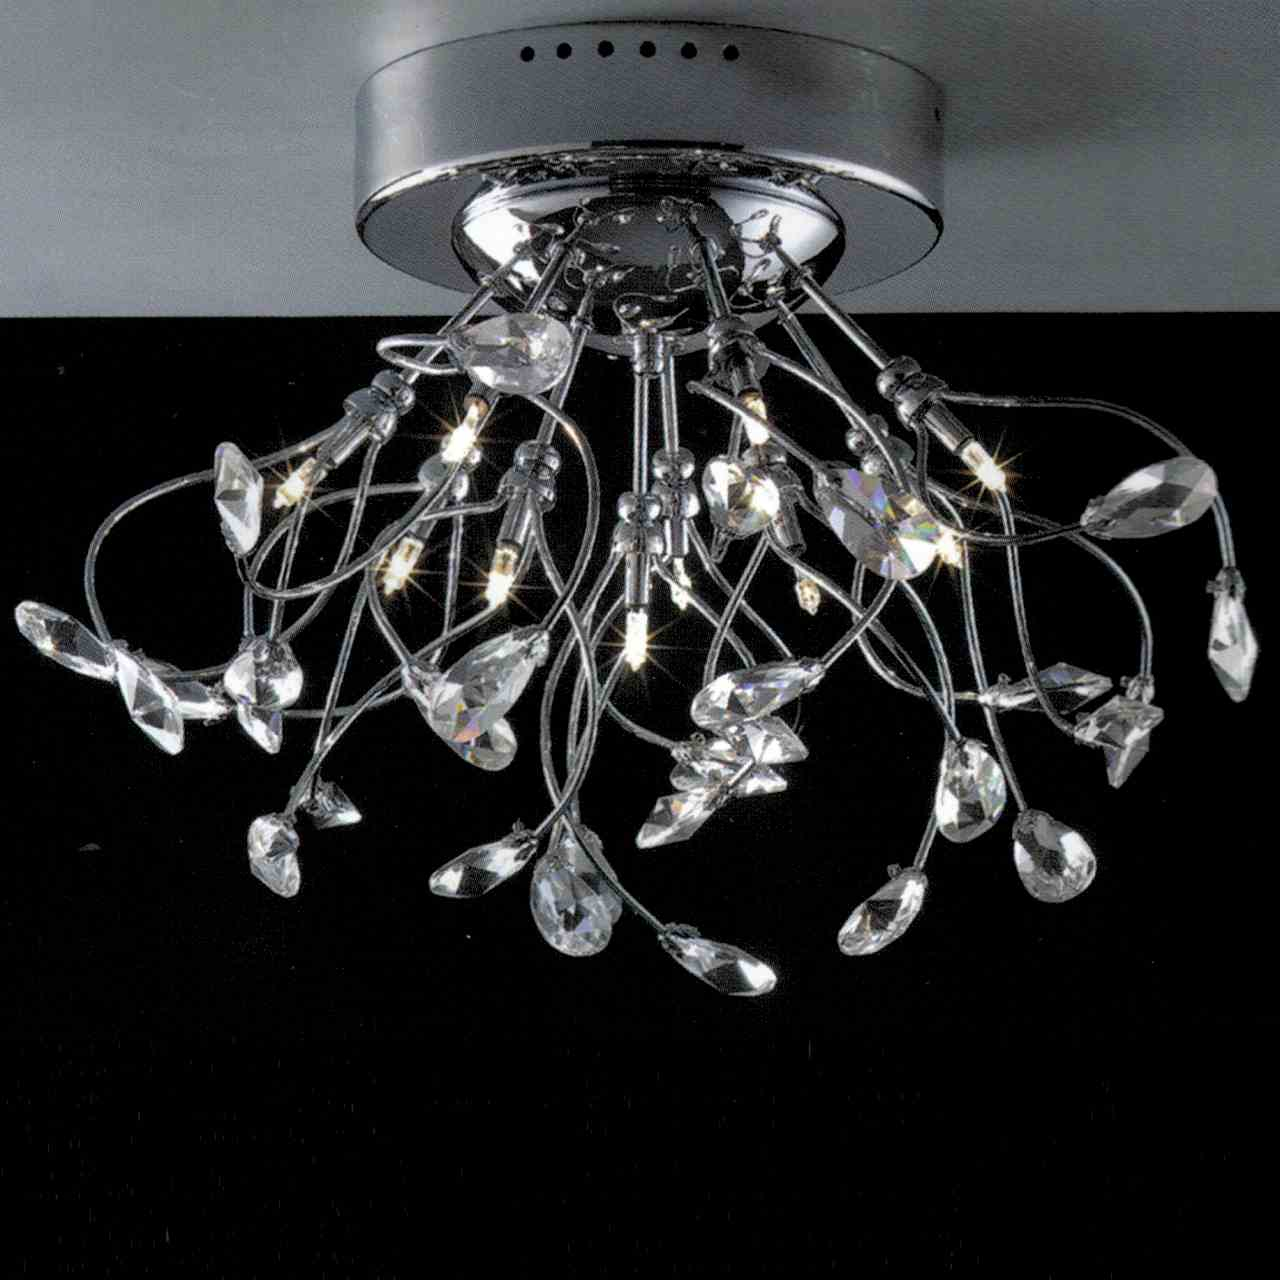 Brizzo lighting stores 22 tempesta modern crystal wall sconce 19 tempesta modern crystal flush mount round chandelier polished chrome brushed nickel 10 lights arubaitofo Gallery